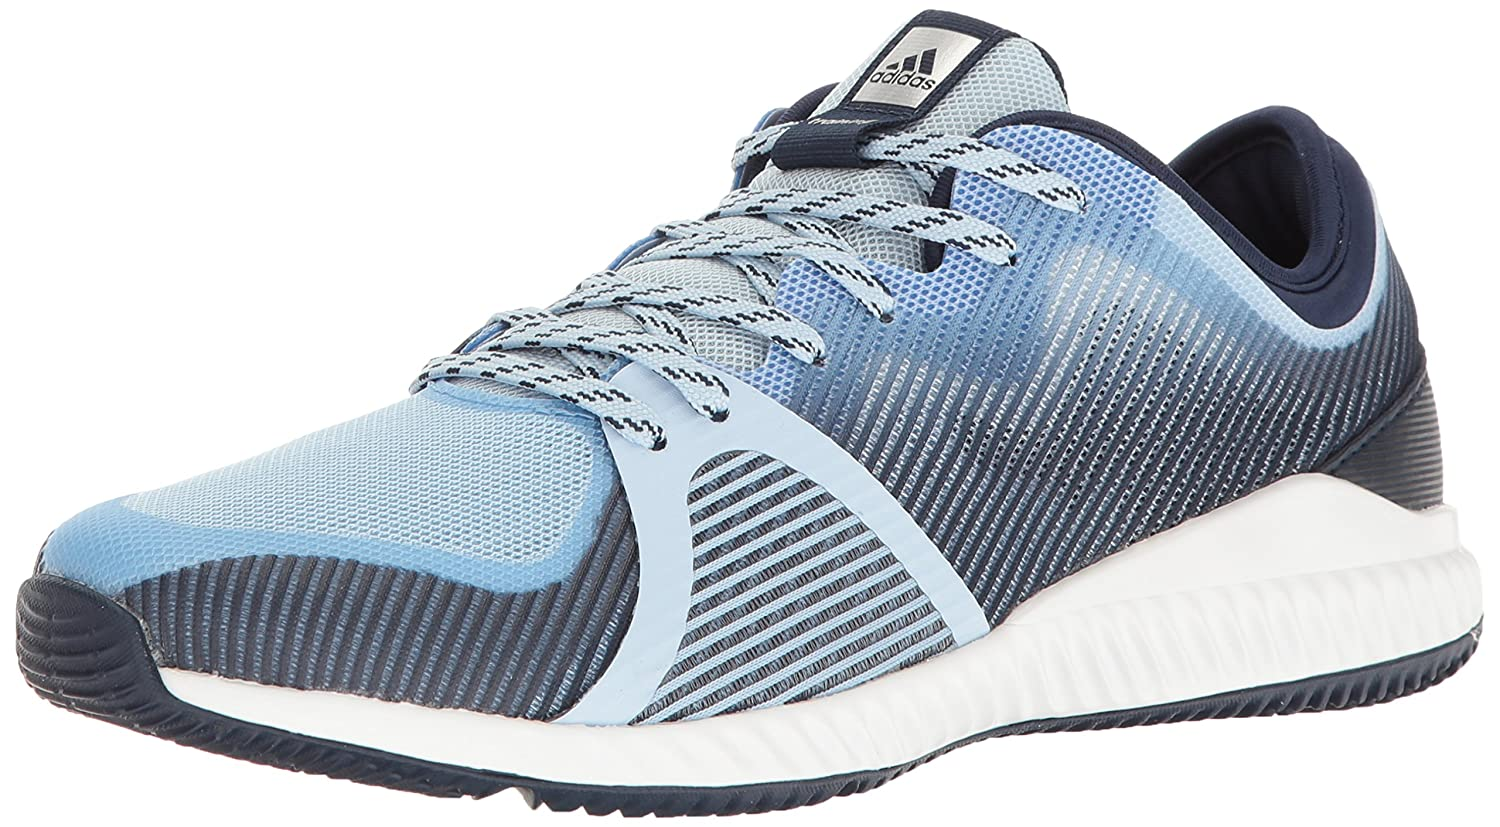 adidas Women's Crazytrain Bounce Cross-Trainer Shoes B01M02A4R1 6.5 M US|Easy Blue/Metallic Silver/Tech Blue